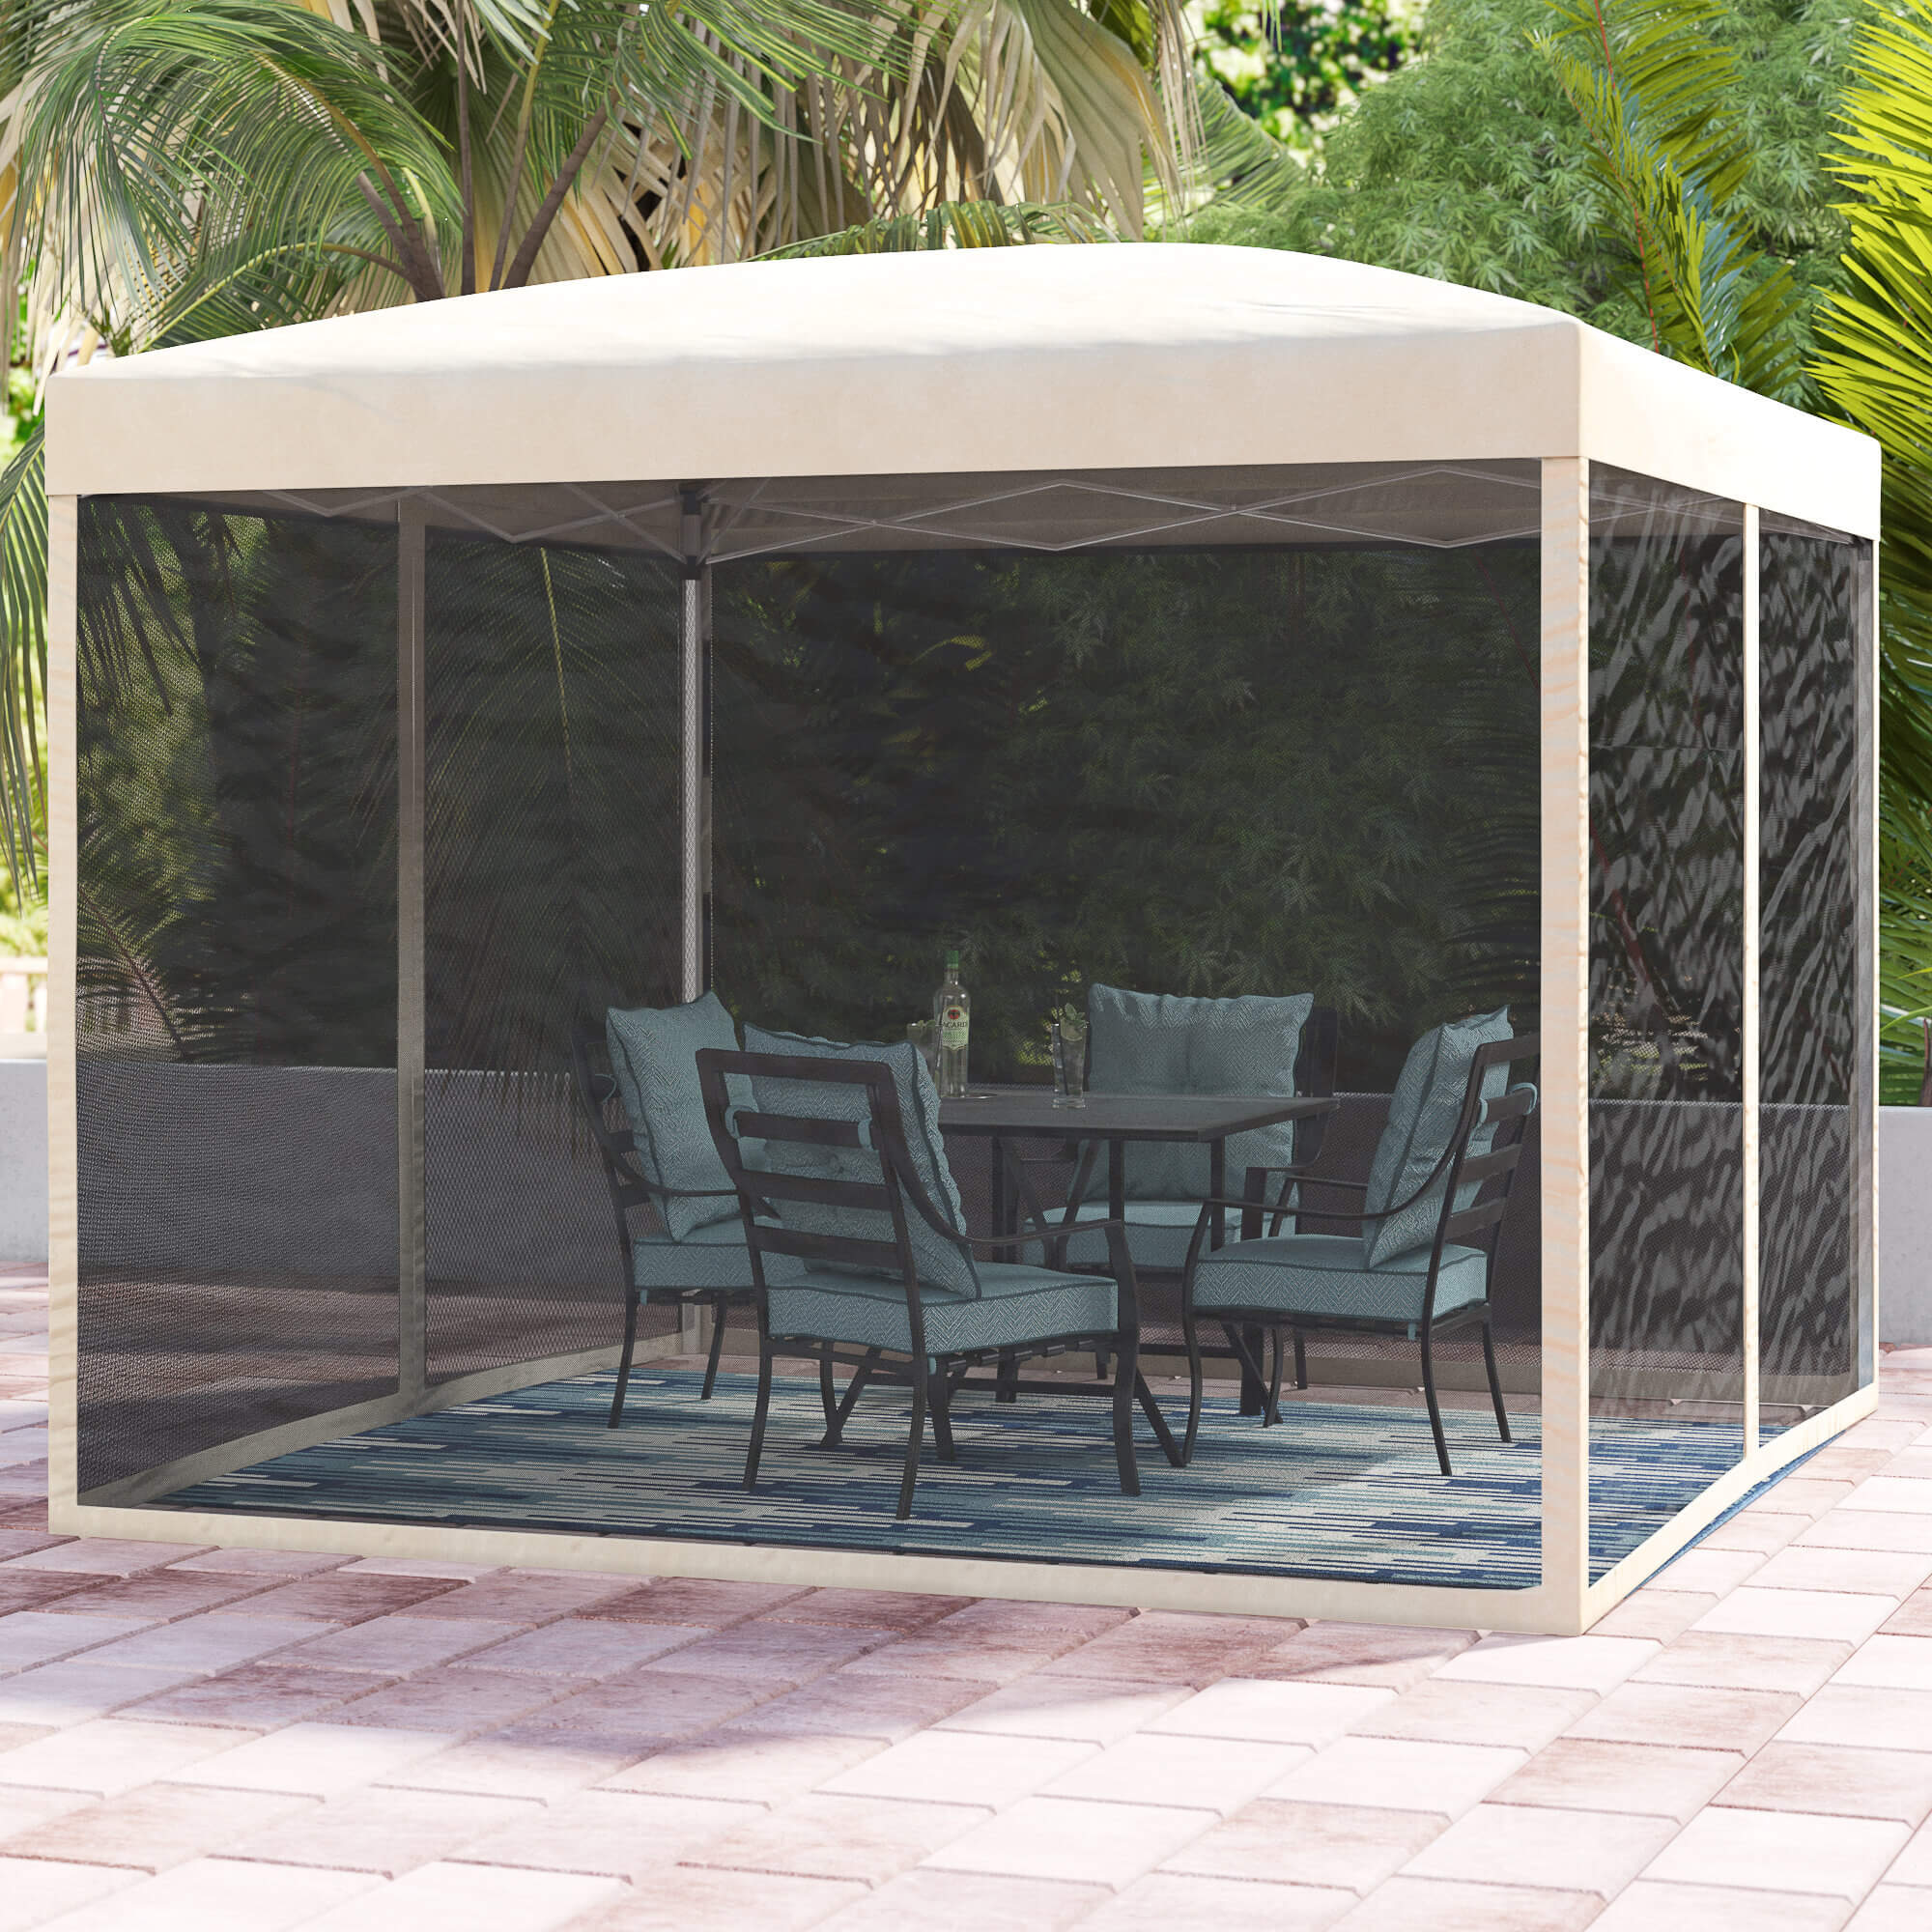 INSTALL POP UP CANOPY FOR INEXPENSIVE PATIO SHADES IDEAS